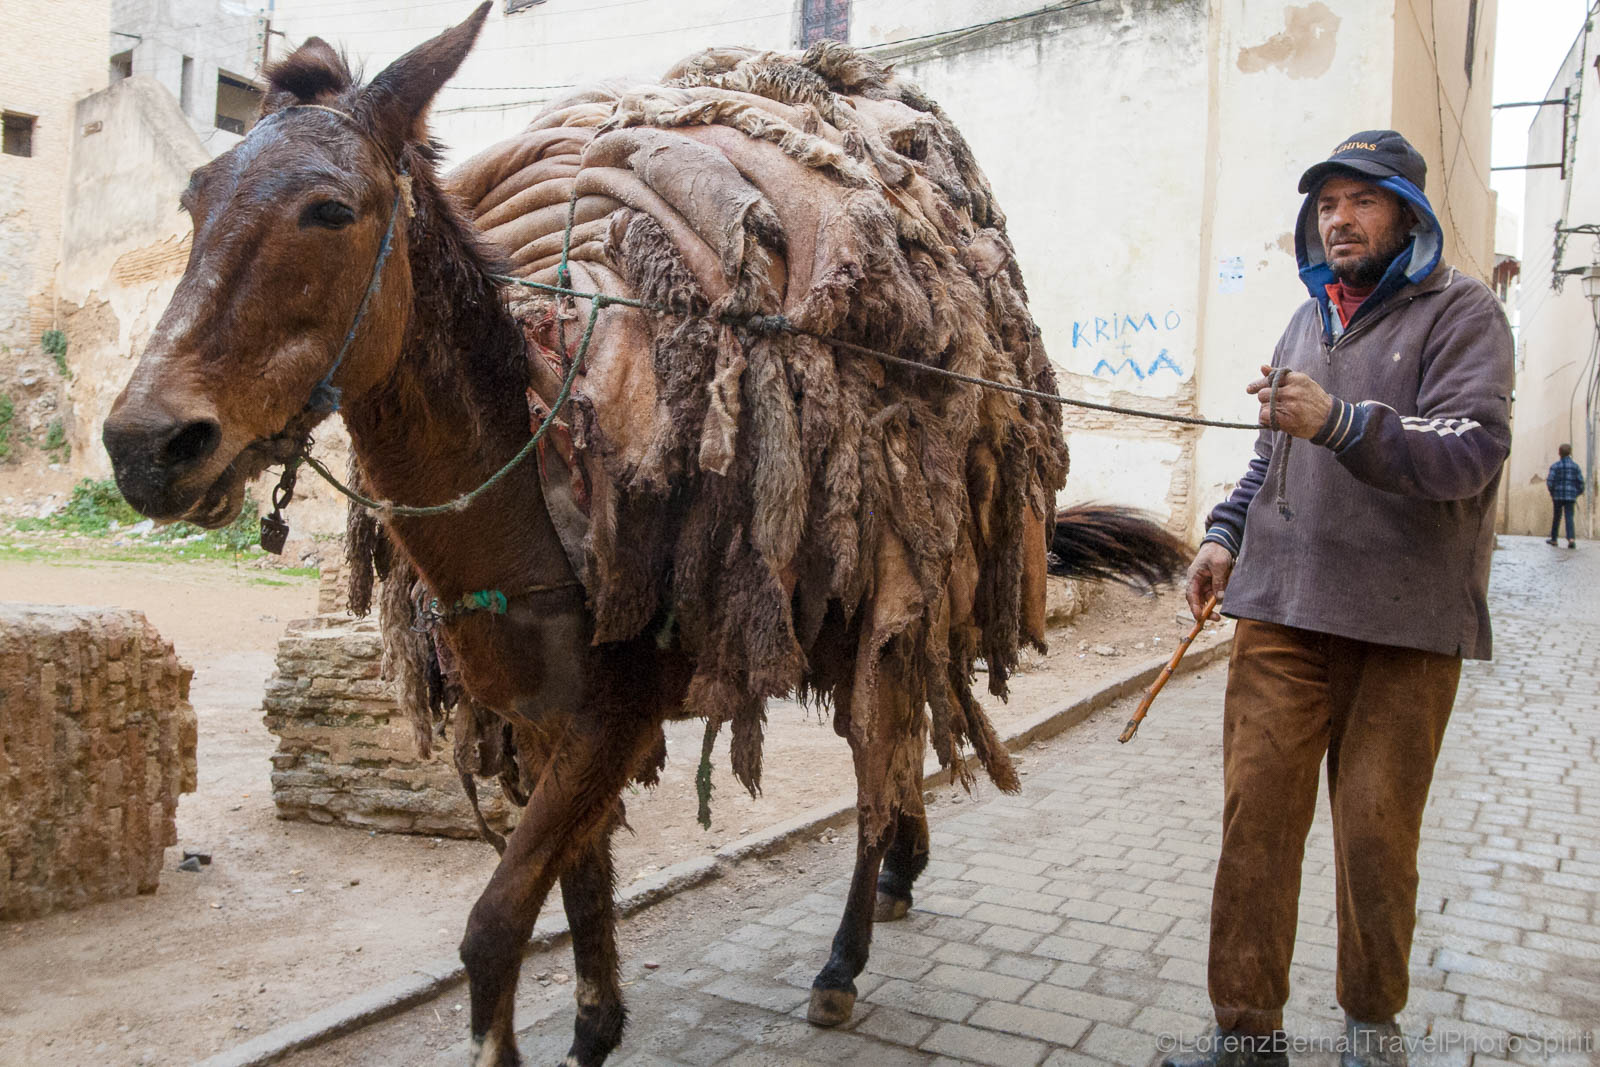 Skins from Fez tanneries, carried away on a horse back, Morocco